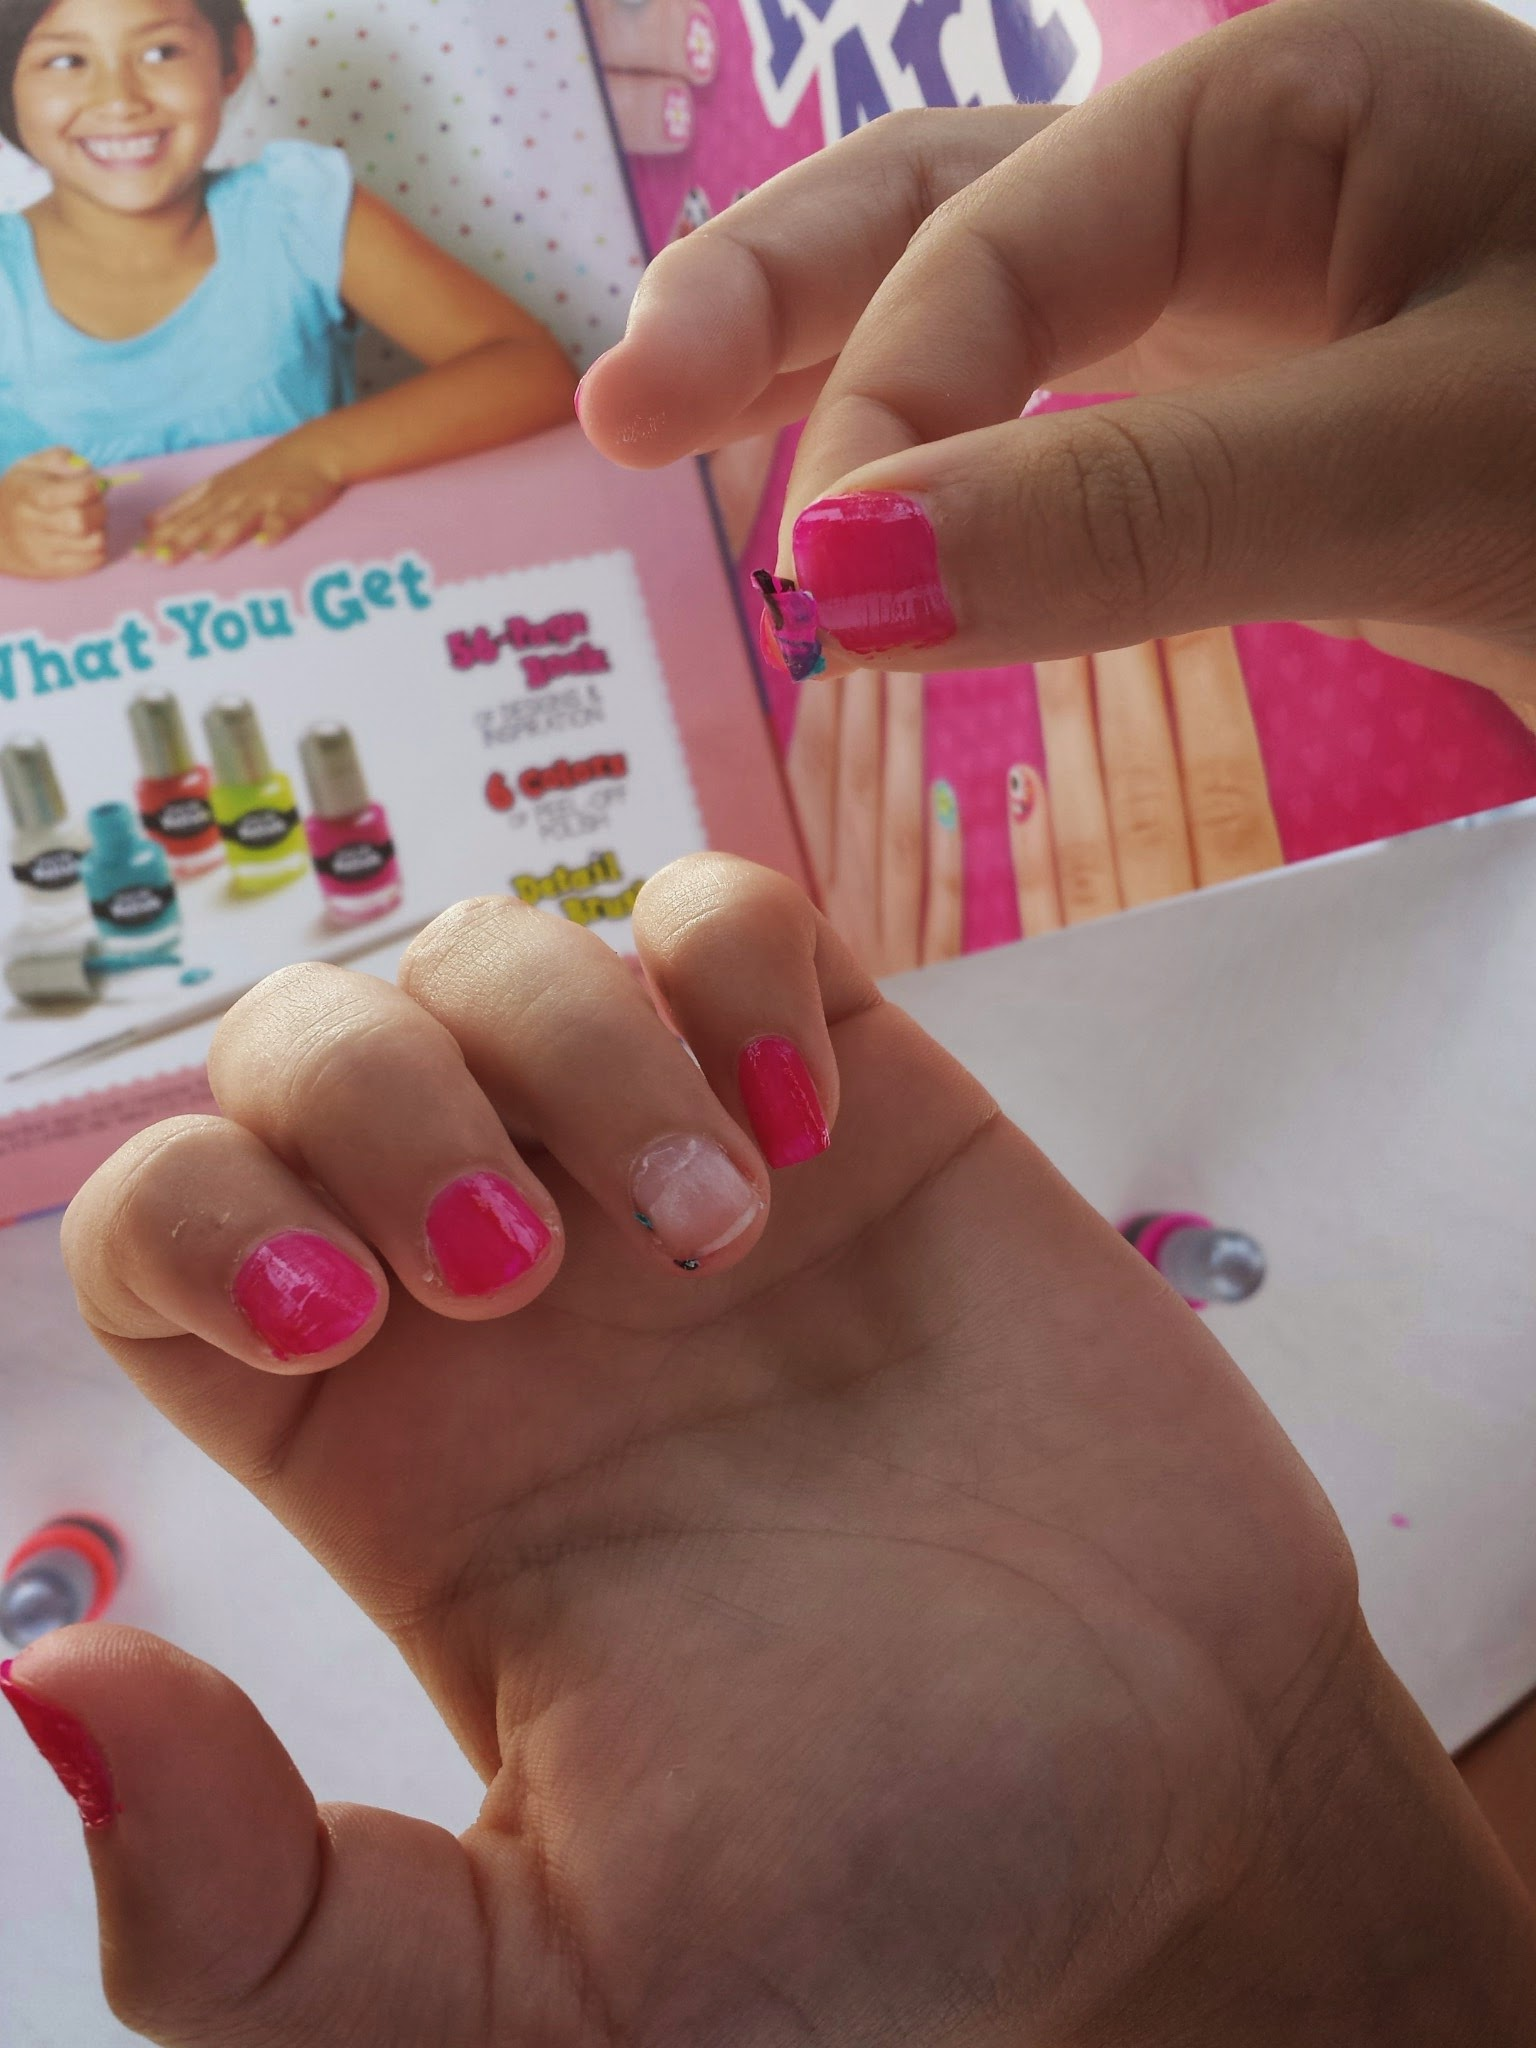 Read Paint Klutz Nail Art For Poolside Summer Fun With Friends